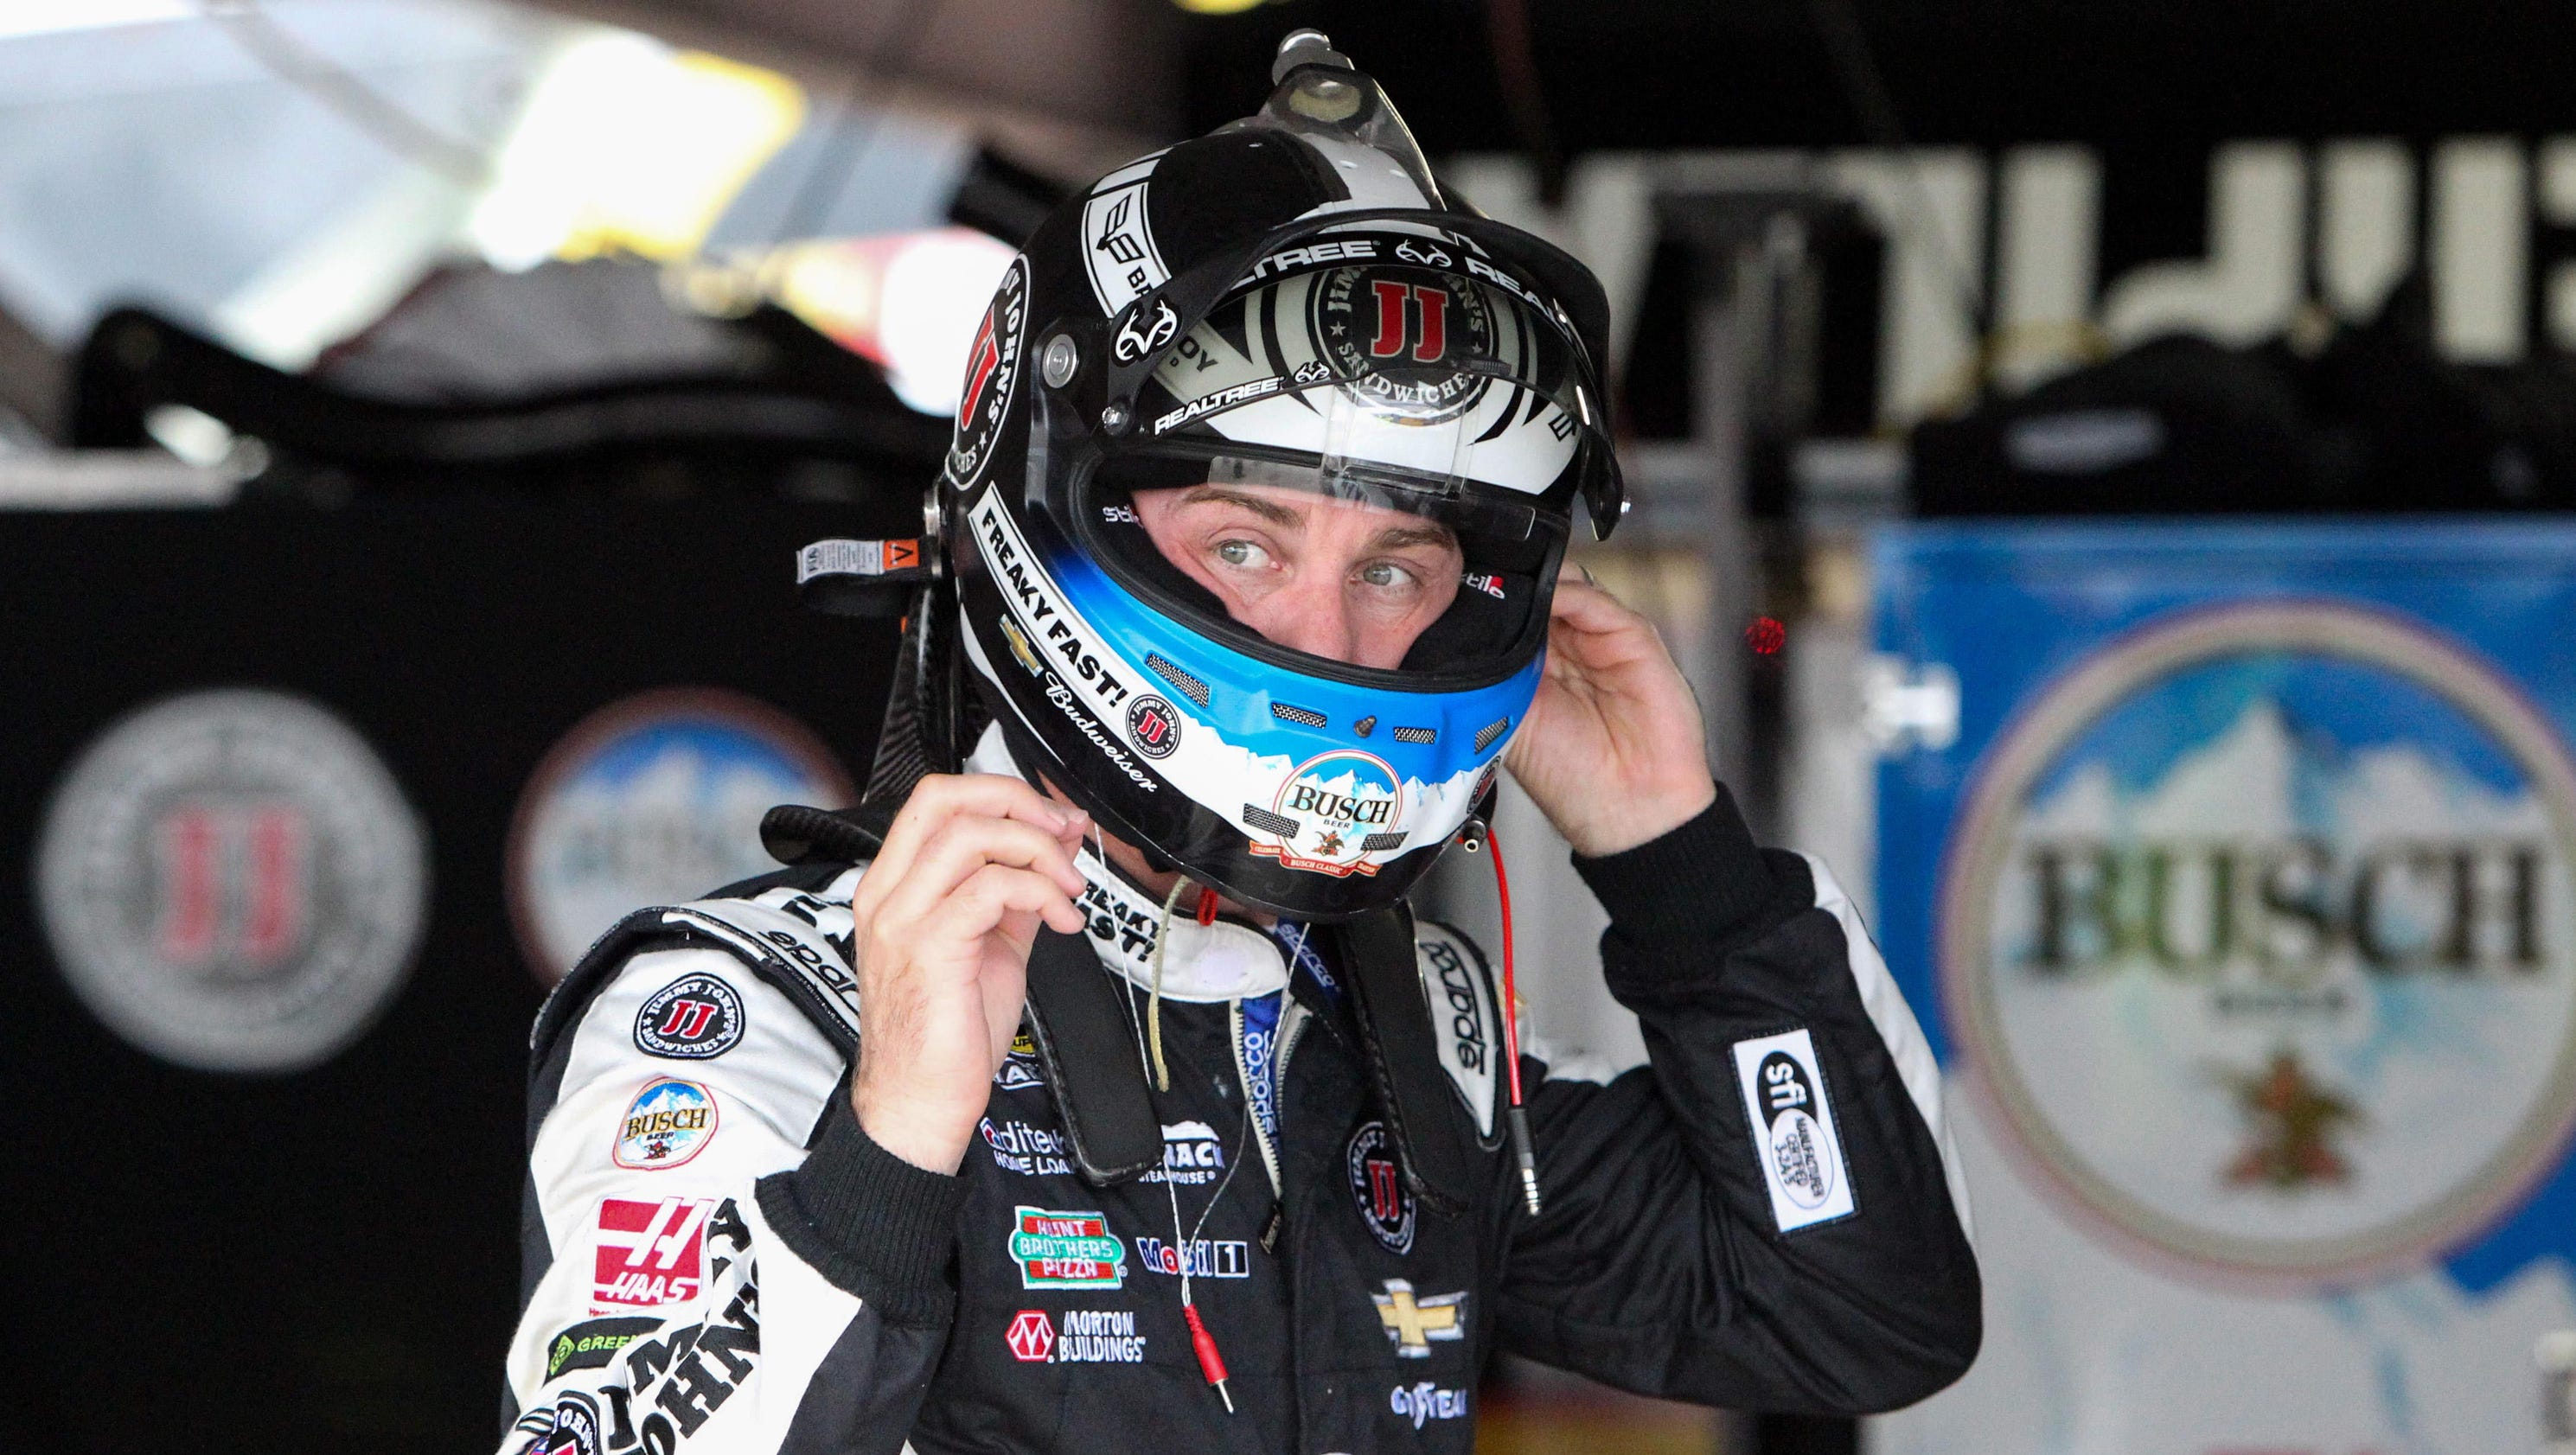 Kevin Harvick on pole, Dover qualifying washed out